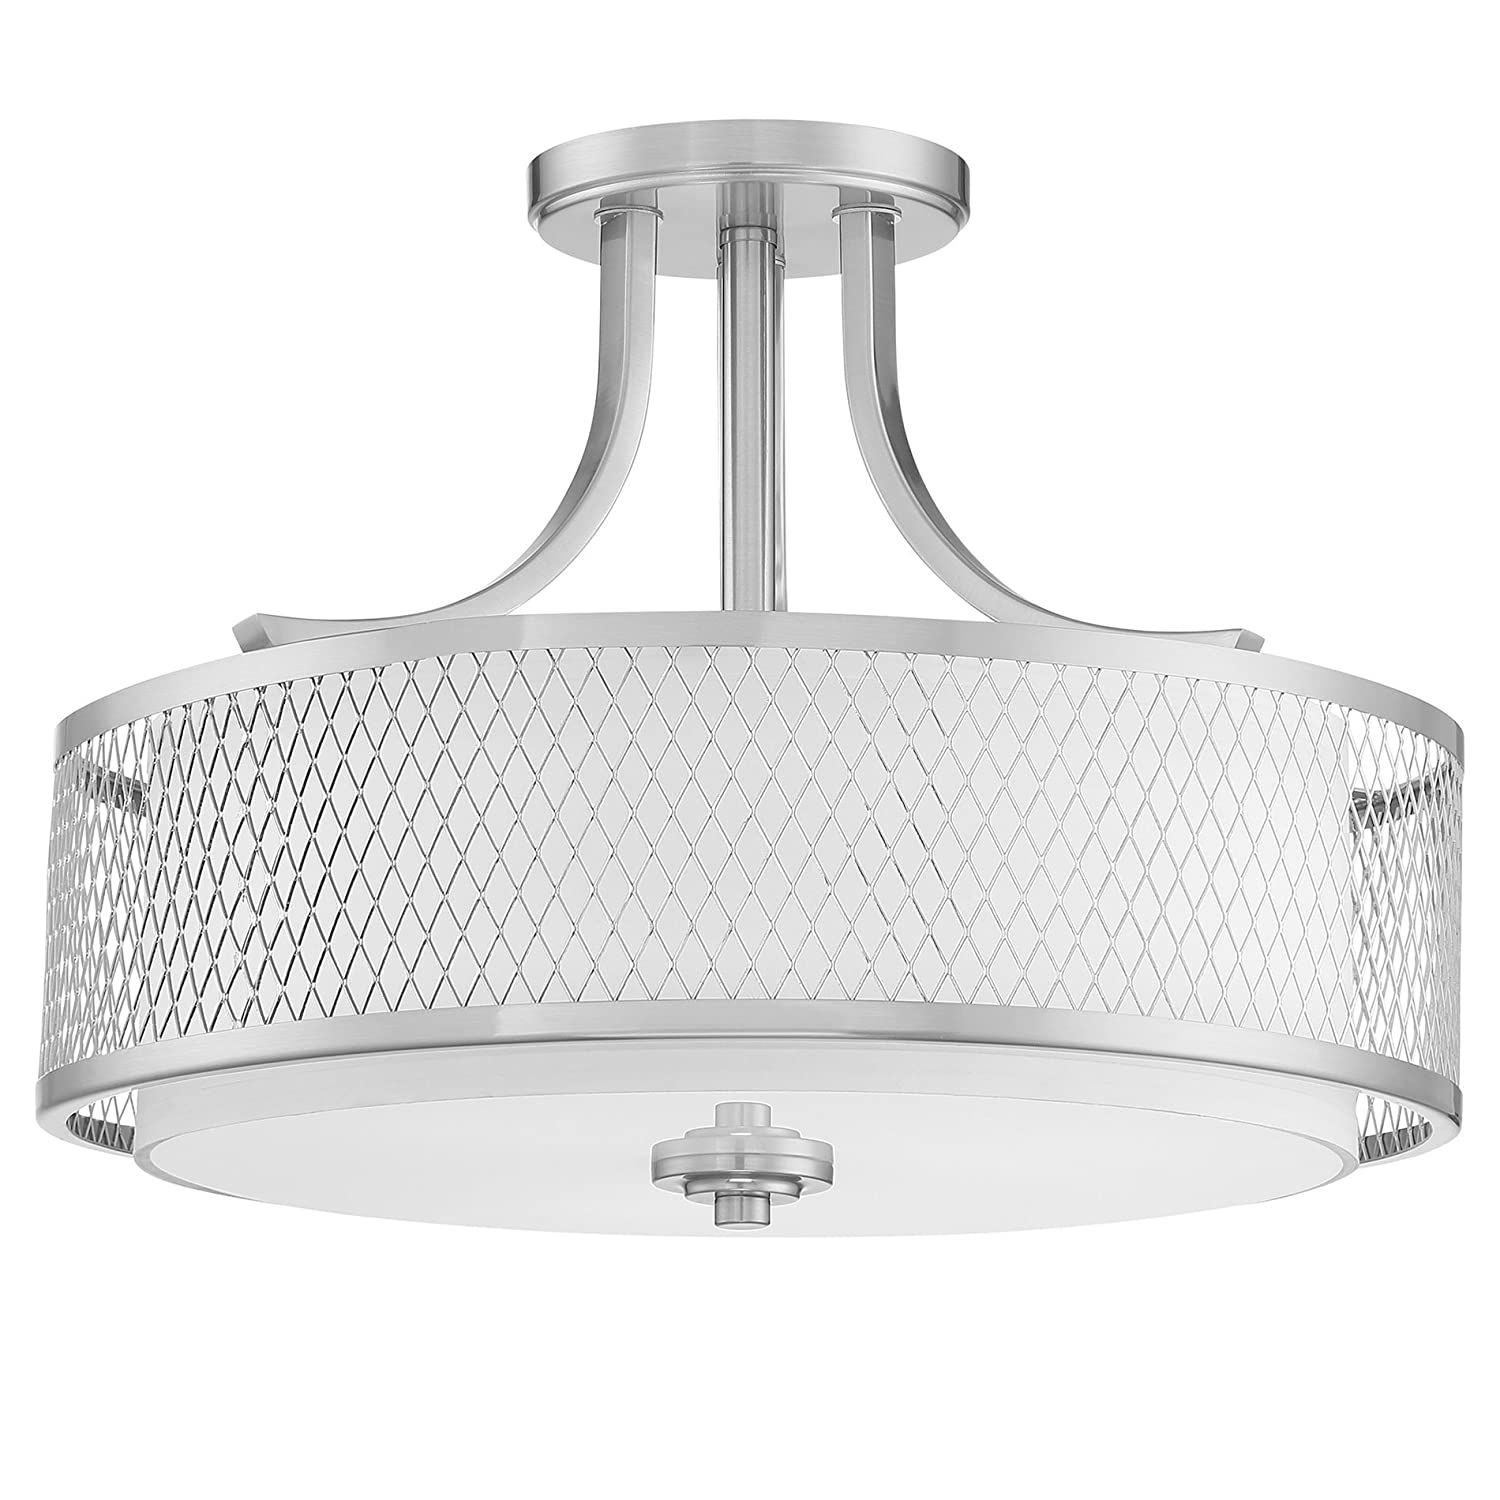 Kira home linx 16 3 light semi flush mount ceiling light fixture outer mesh shade and inner white fabric shade brushed nickel finish amazon com